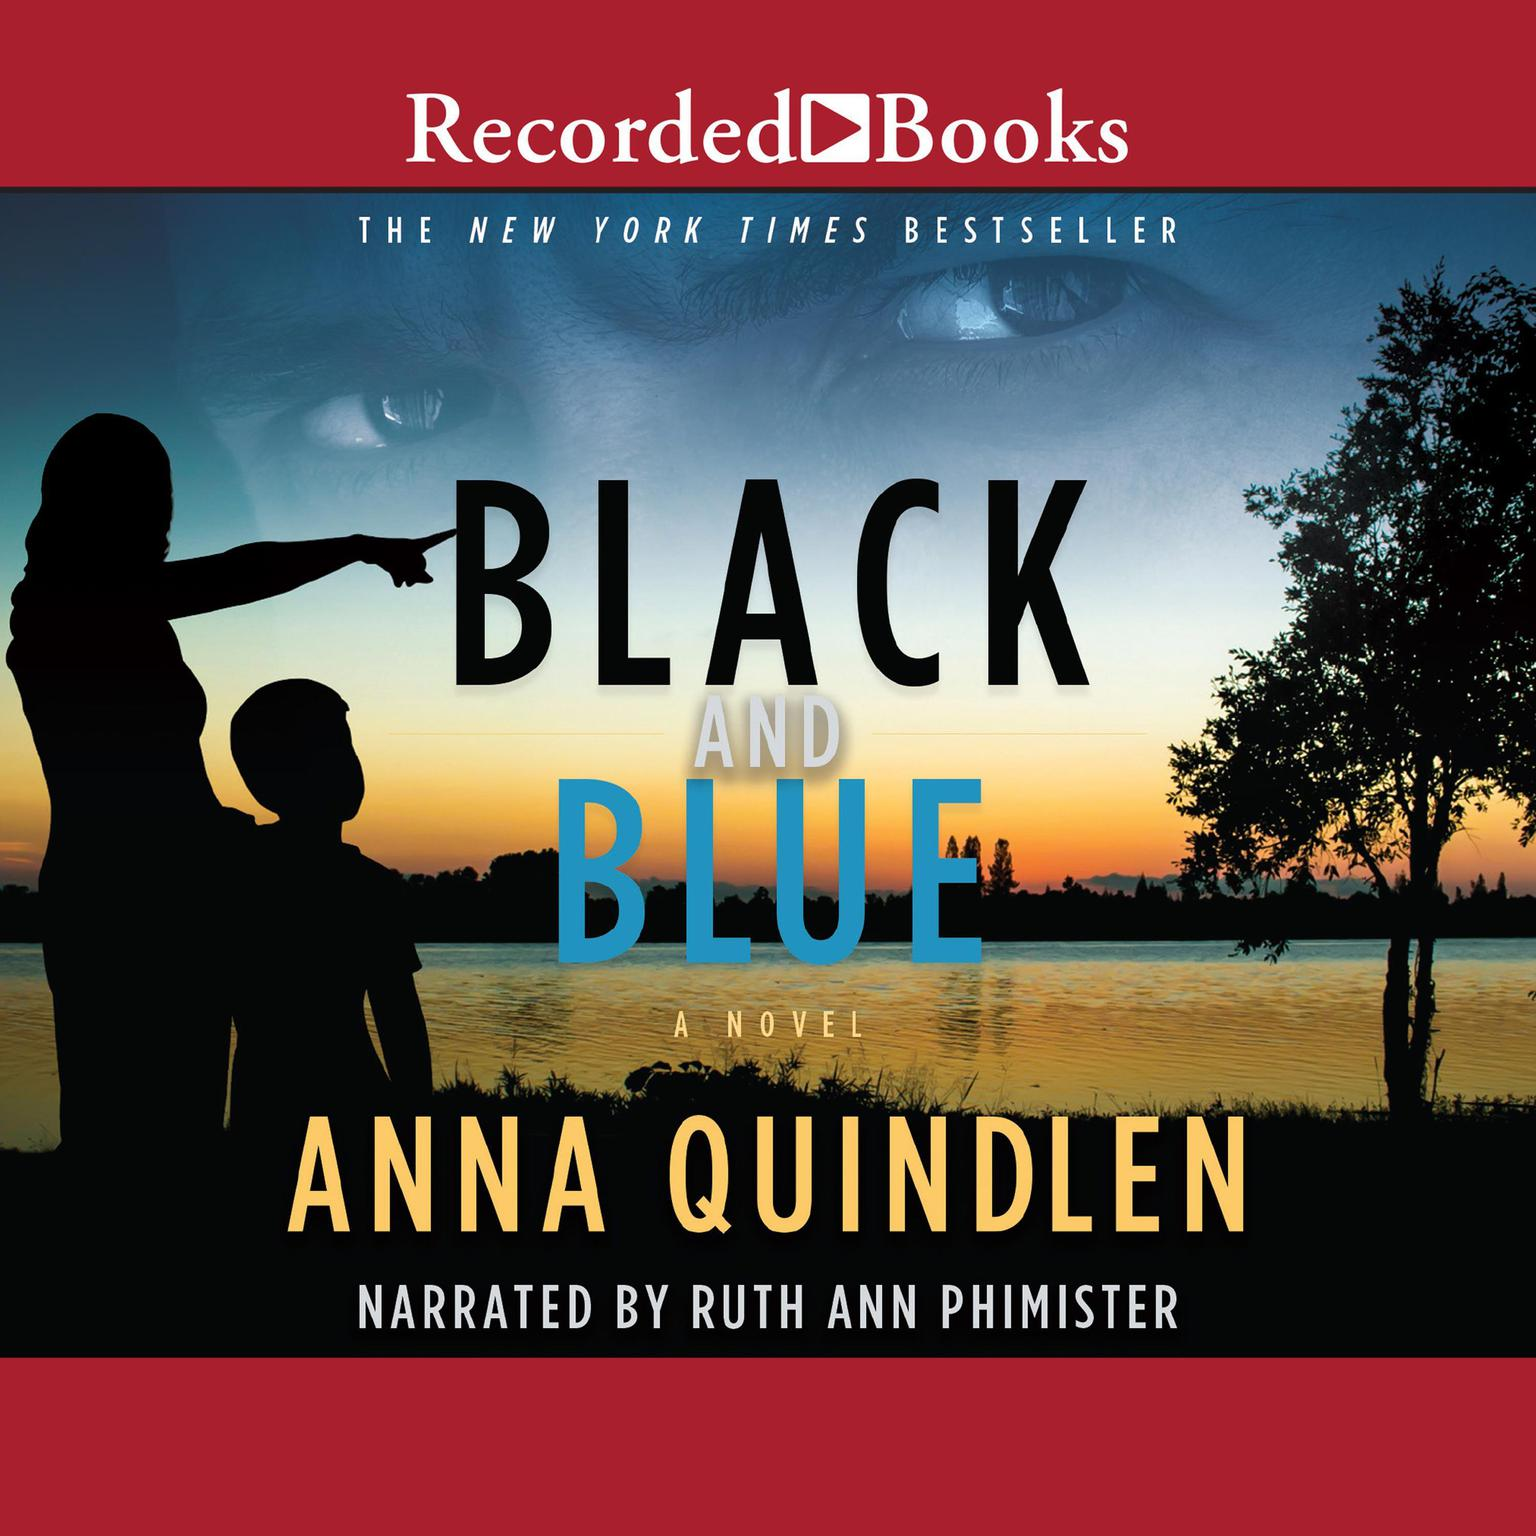 blakc and blue by anna quindel essay Immediately download the black and blue (anna quindlen novel) summary, chapter-by-chapter analysis, book notes, essays, quotes, character descriptions, lesson plans, and more - everything you need for studying or teaching black and blue (anna quindlen novel).